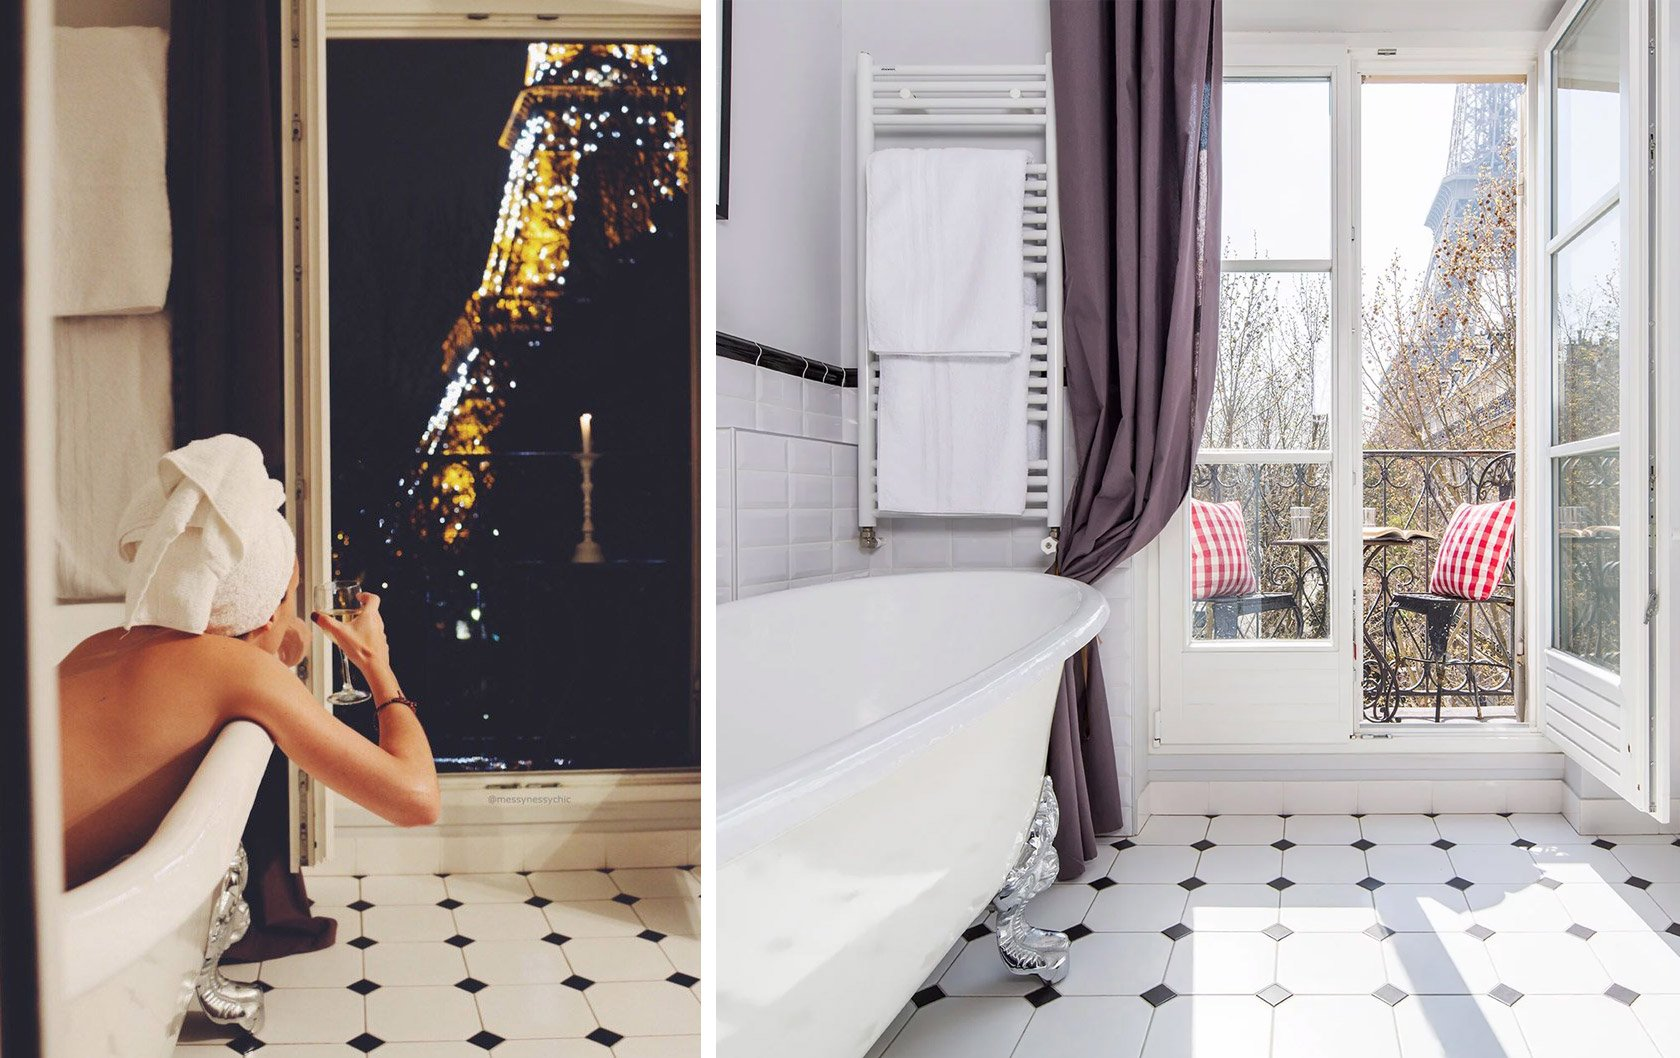 Who Is The Girl In The Paris Bathtub?